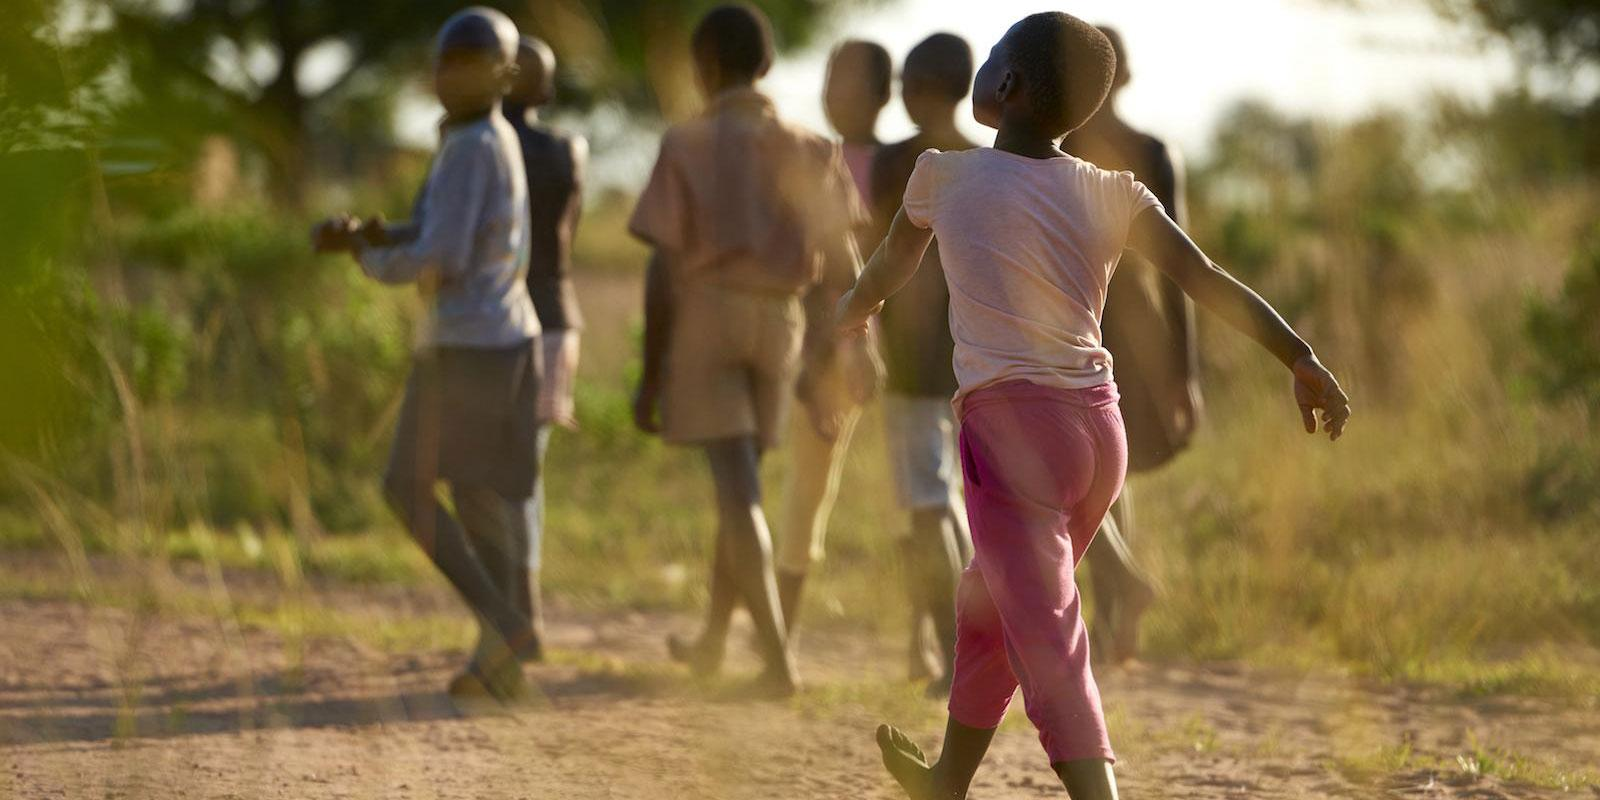 Children walking and running on dusty road